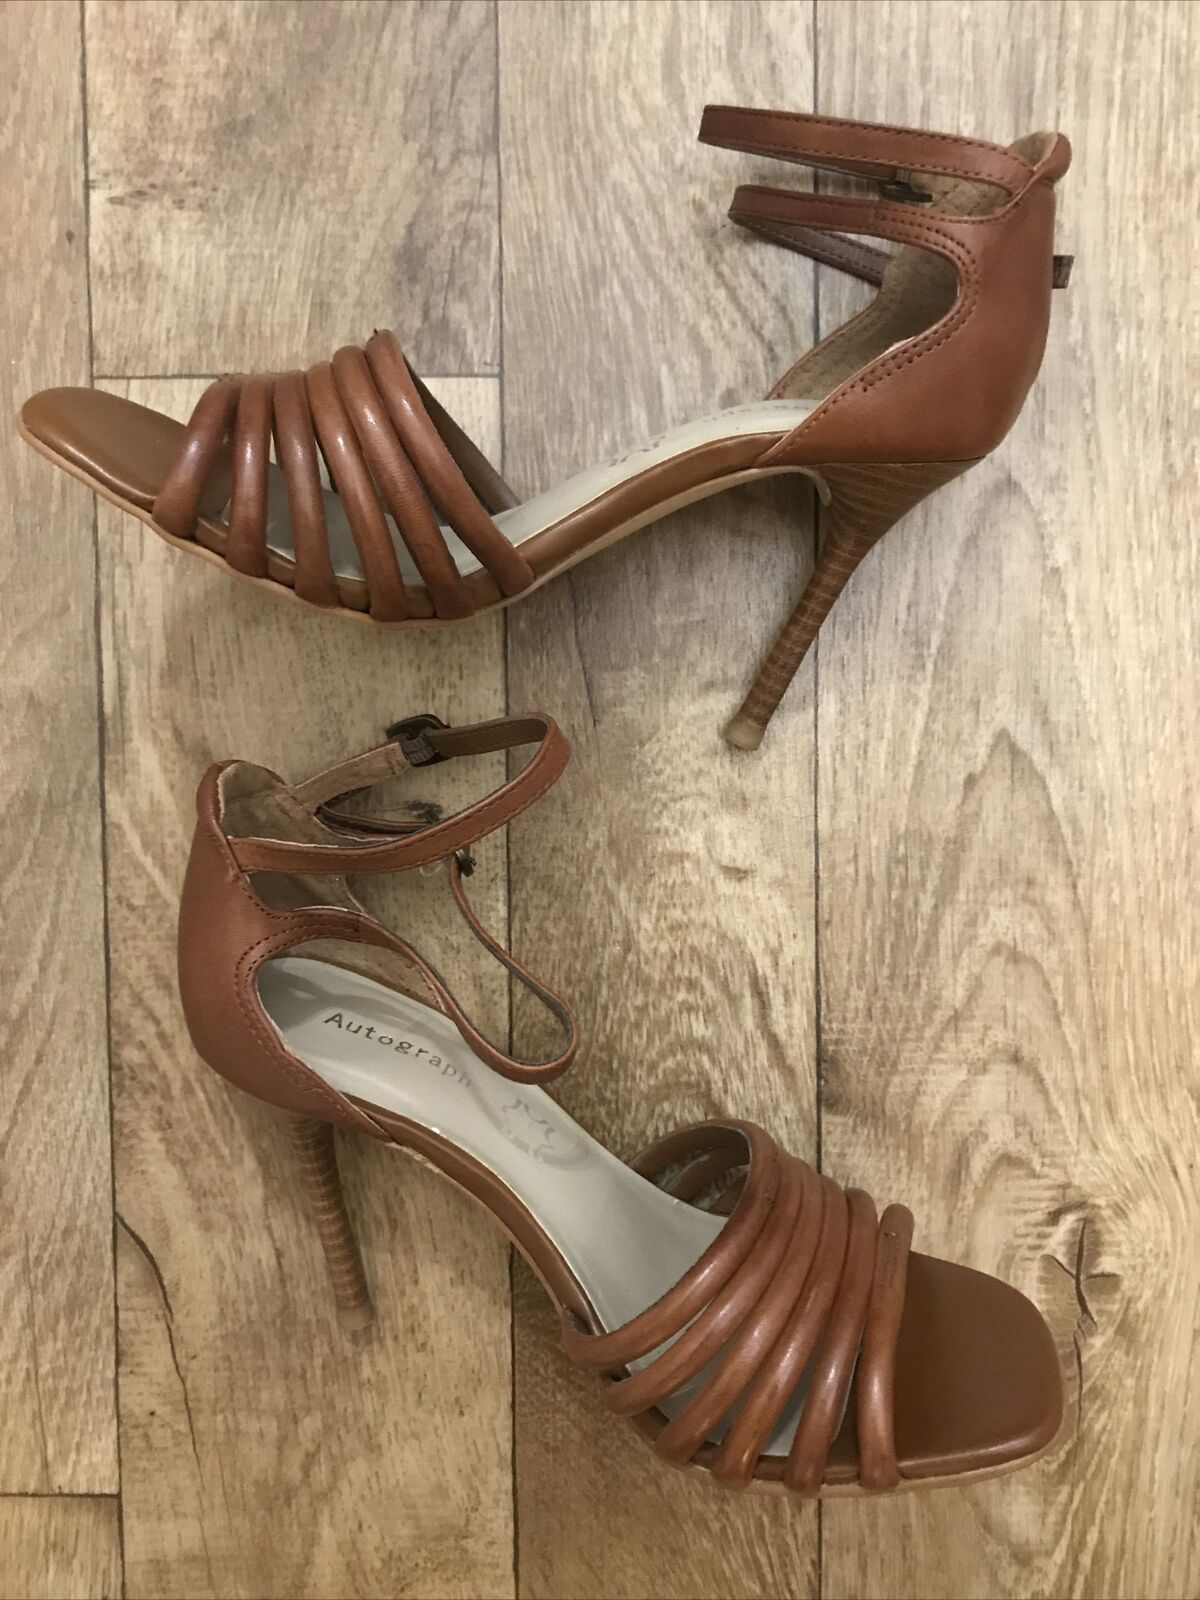 M&S Autograph Brown Leather Strappy Heeled Ankle Strap Sandals UK 4.5